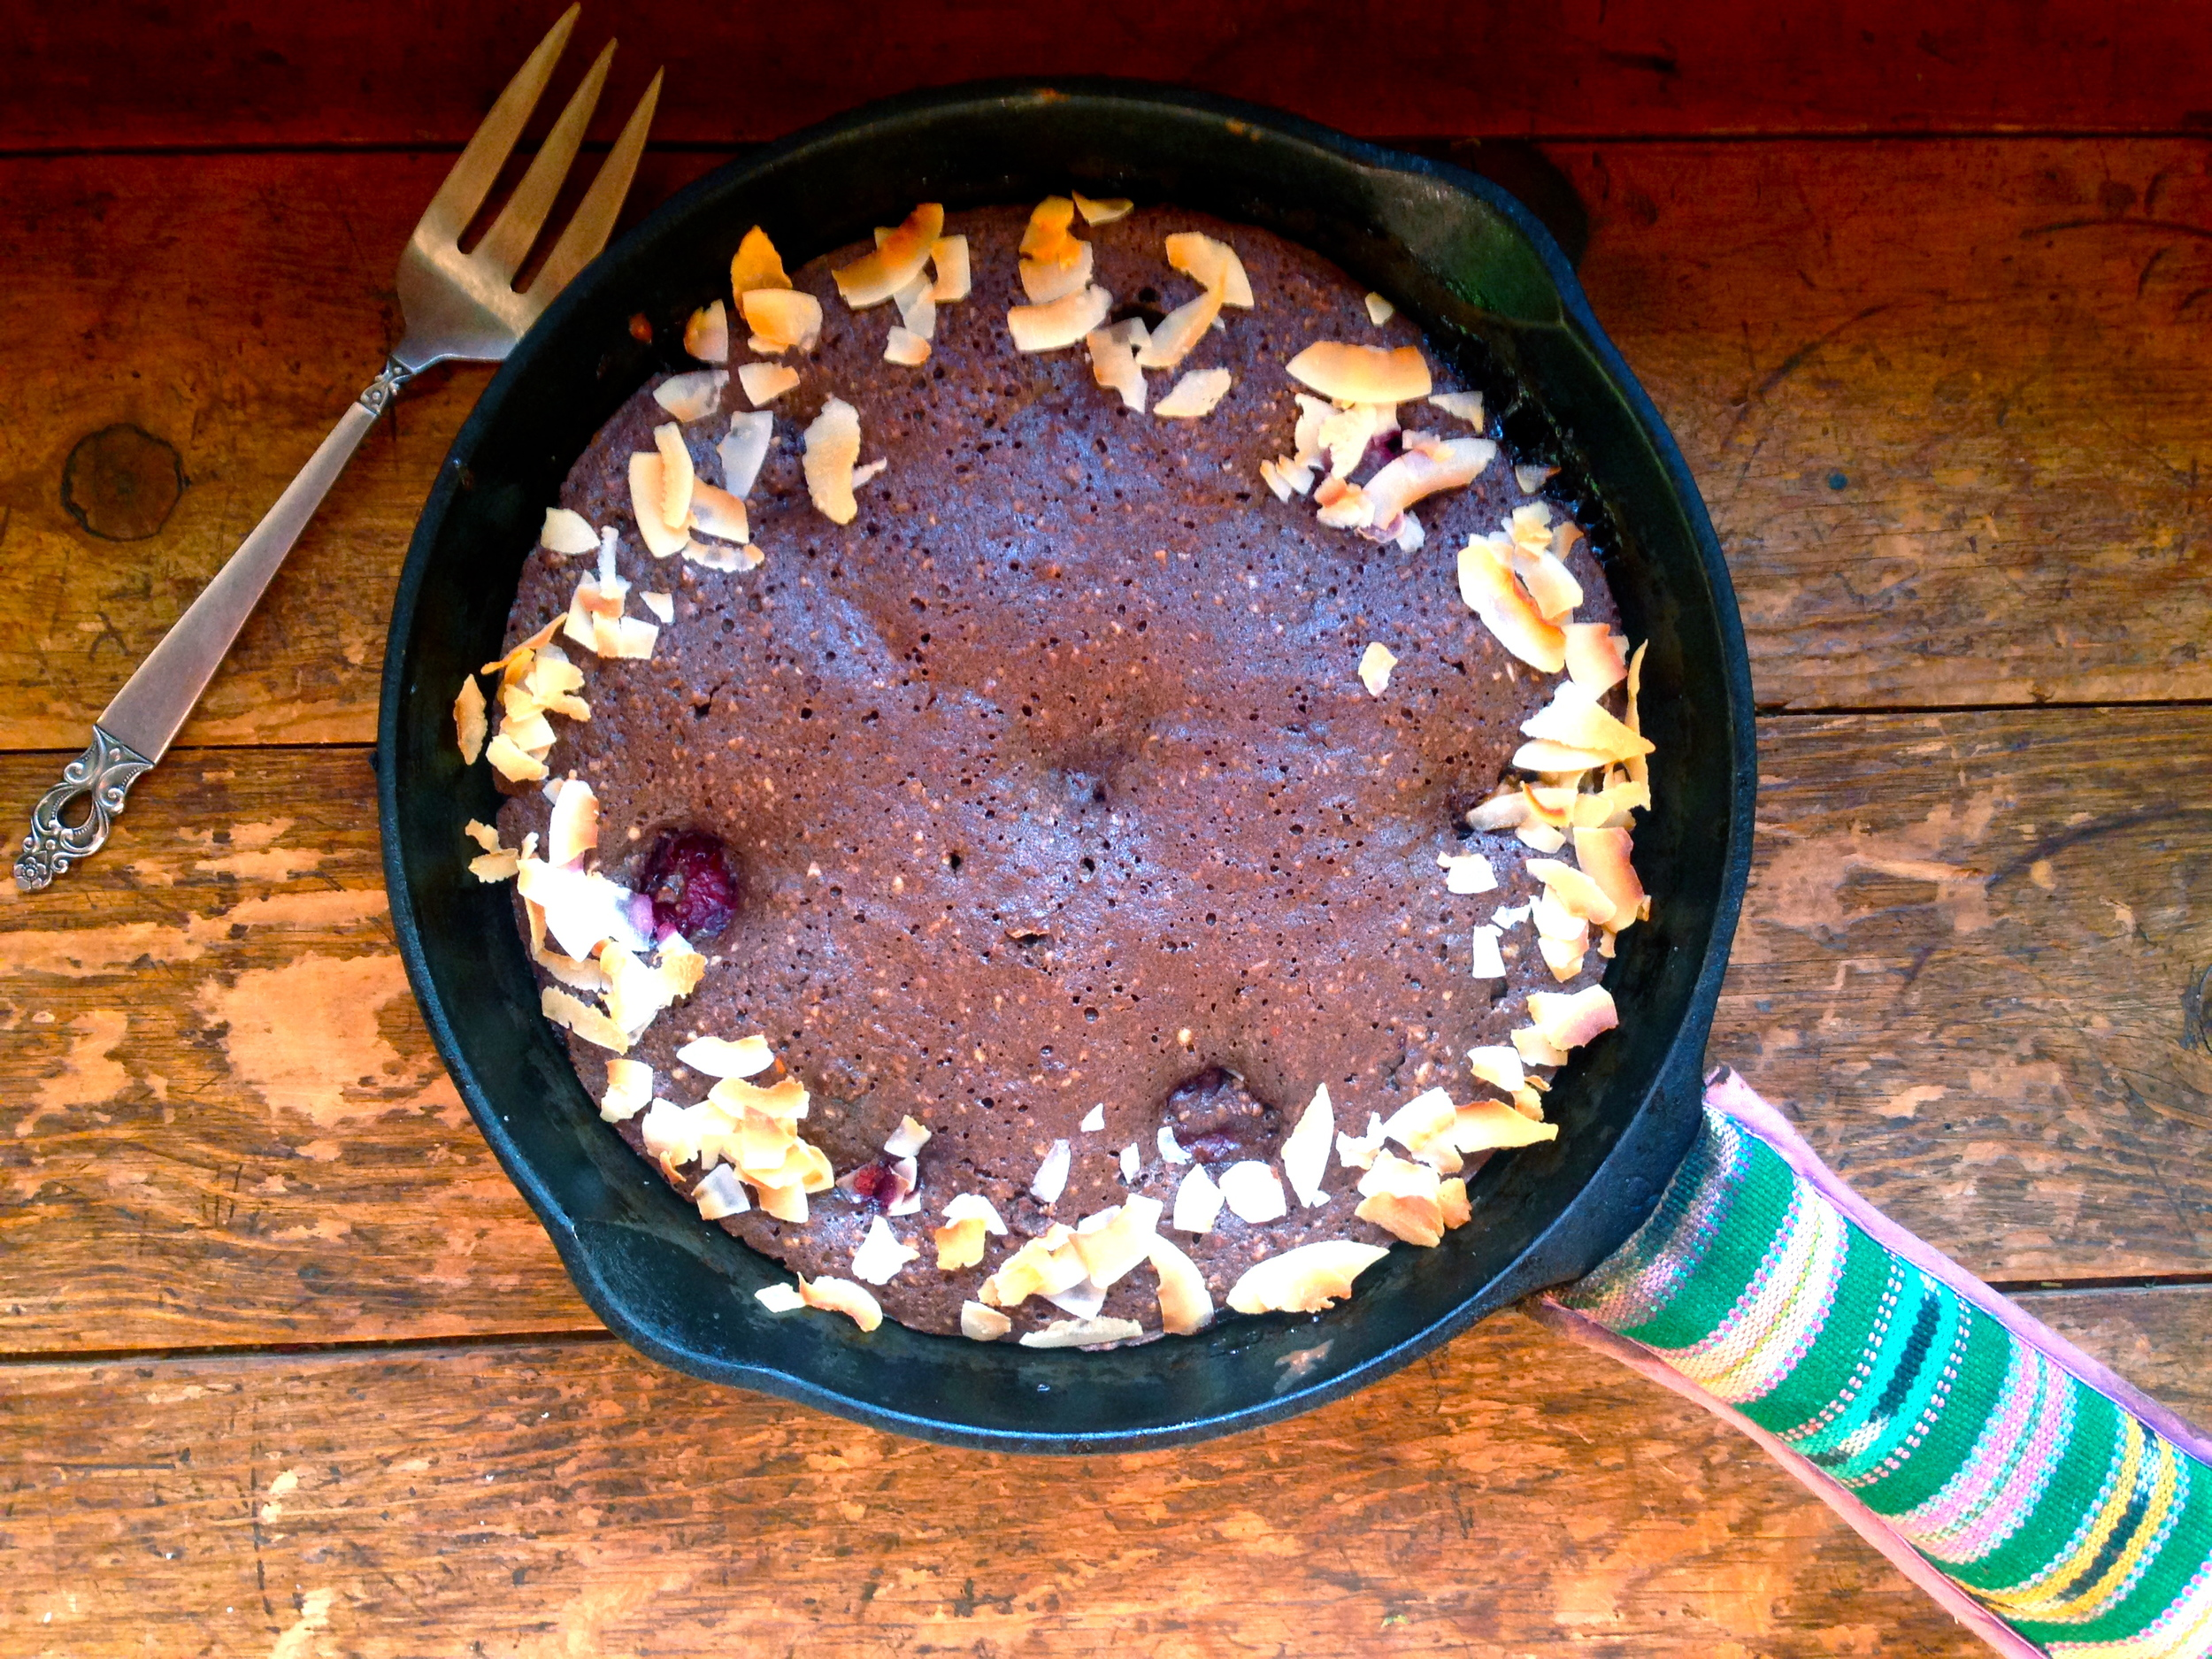 Chocolate Skillet Cake with Santa Rosa + toasted Coconut shavings